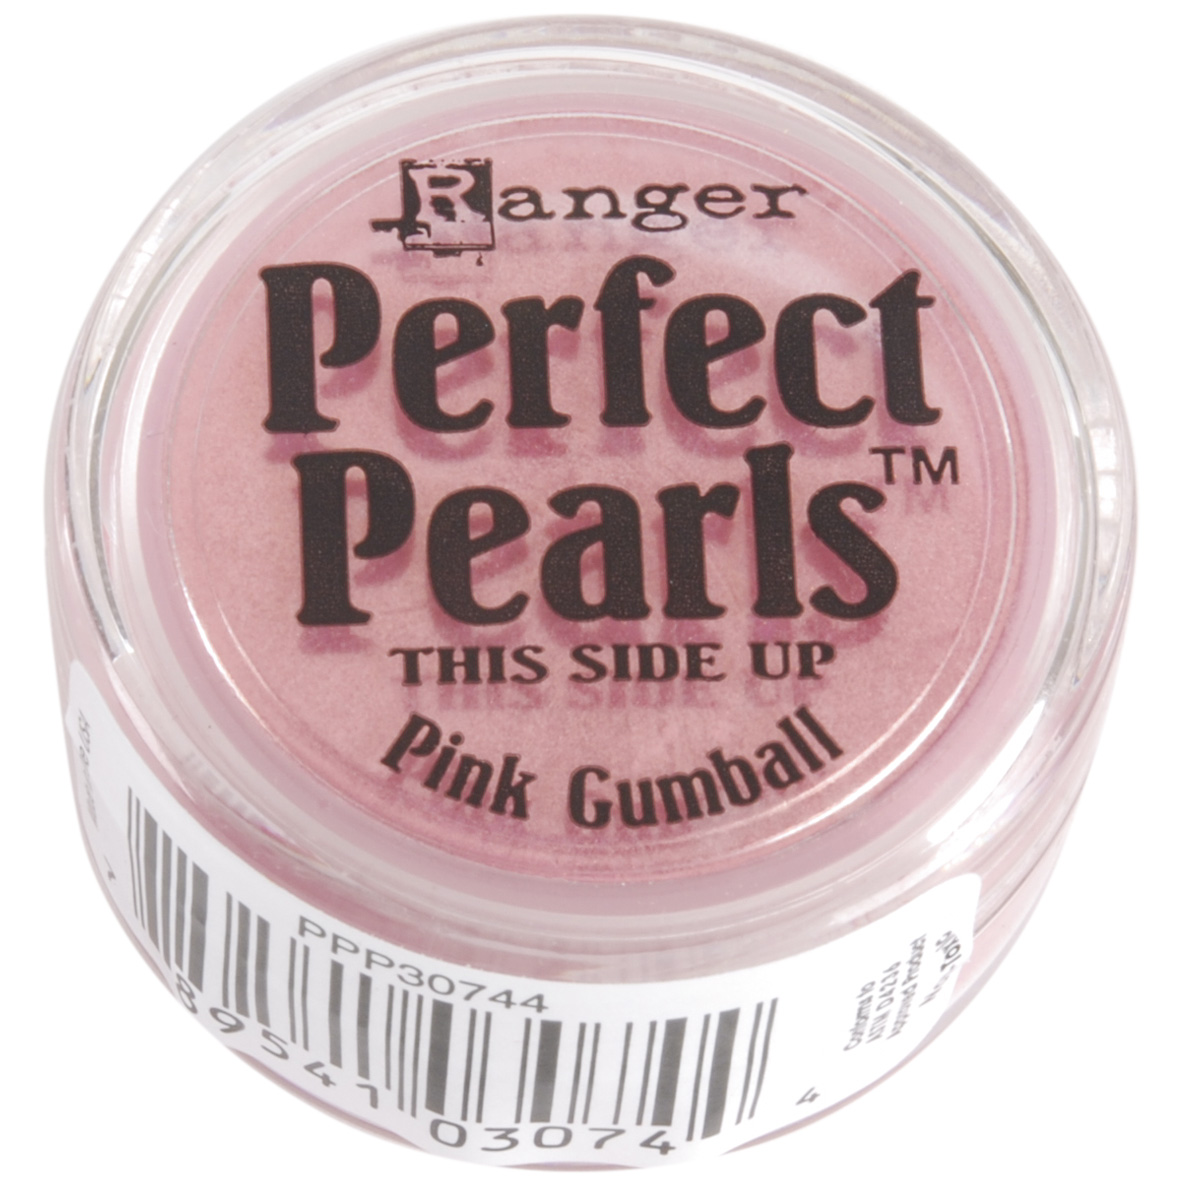 Perfect Pearls Pigment Powder .25oz-Pink Gumball